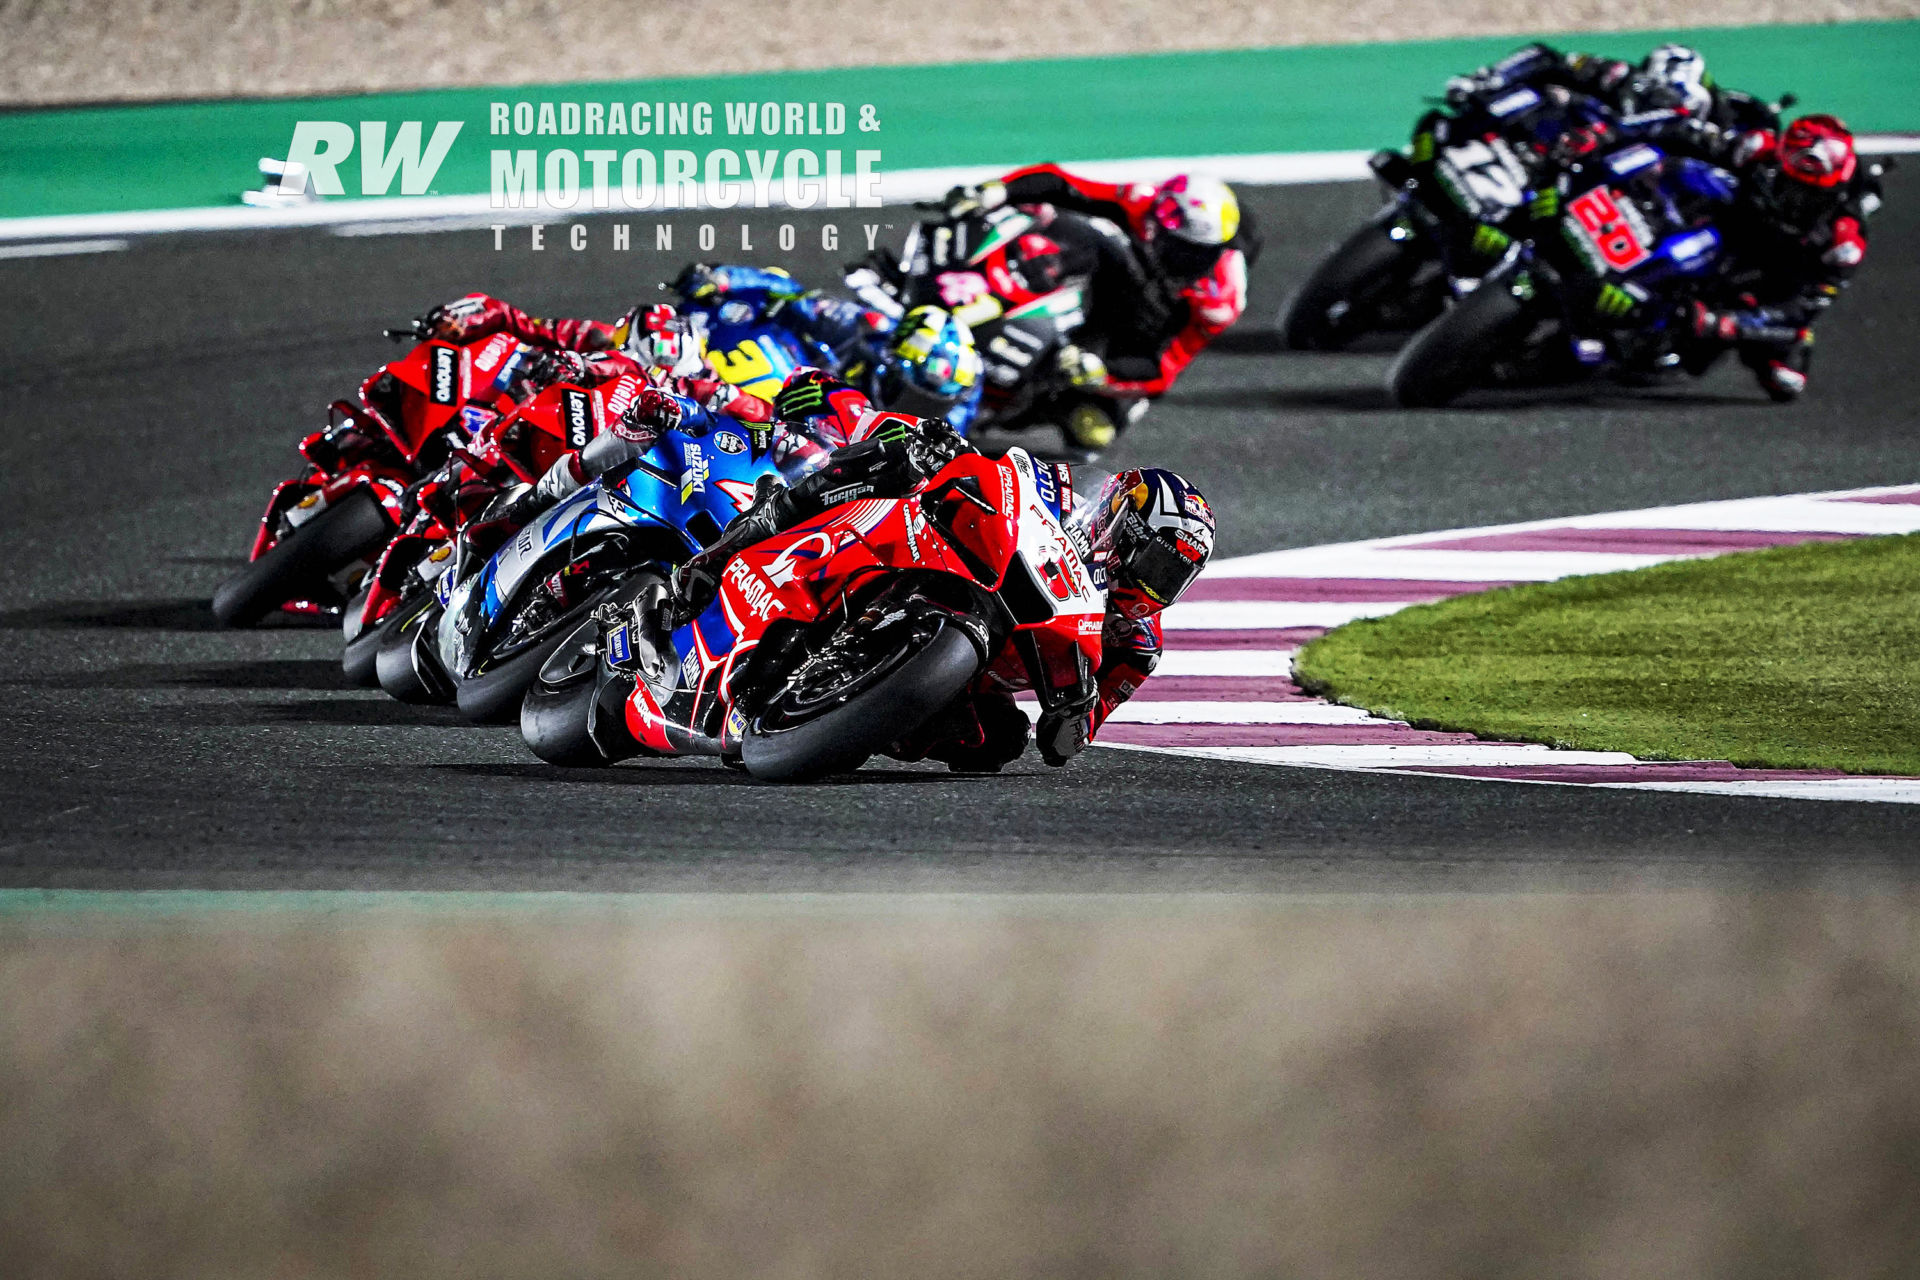 Second-quickest qualifier Johann Zarco (5) chases pole-sitter Jorge Martin (already out of the frame) and leads Alex Rins (42), Francesco Bagnaia, Jack Miller, Joan Mir (36) Aleix Espargaró (41), Fabio Quartararo (20), and Maverick Viñales (12) early in the Moto-GP race during Qatar weekend #2. Photo by DPPI Media.